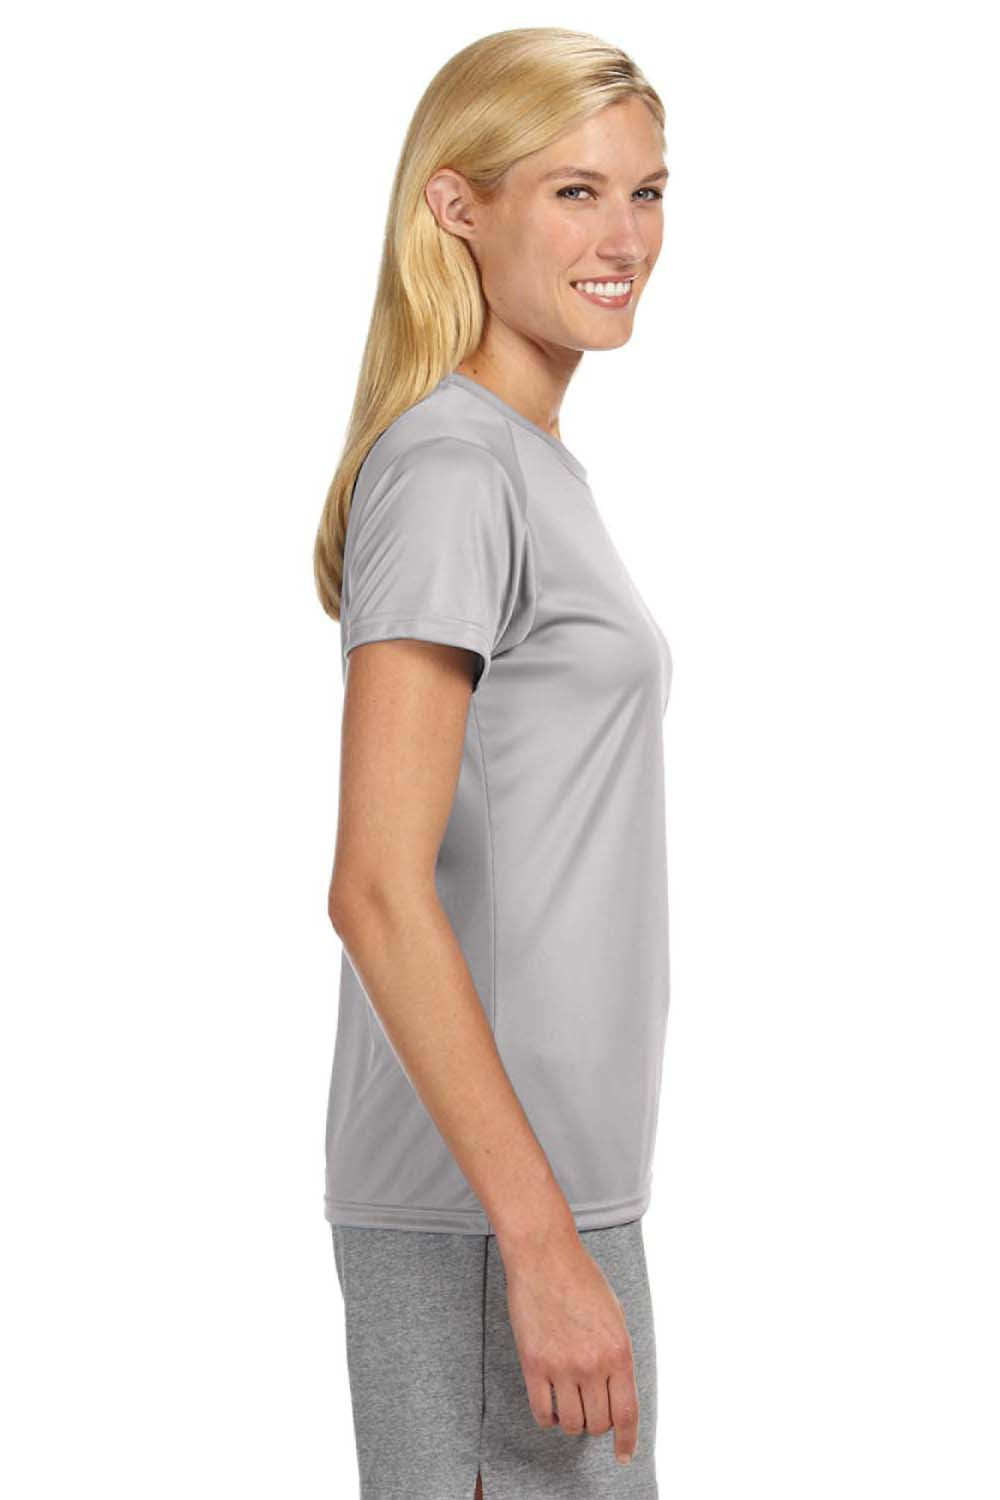 A4 NW3201 Womens Cooling Performance Moisture Wicking Short Sleeve Crewneck T-Shirt Silver Grey Side